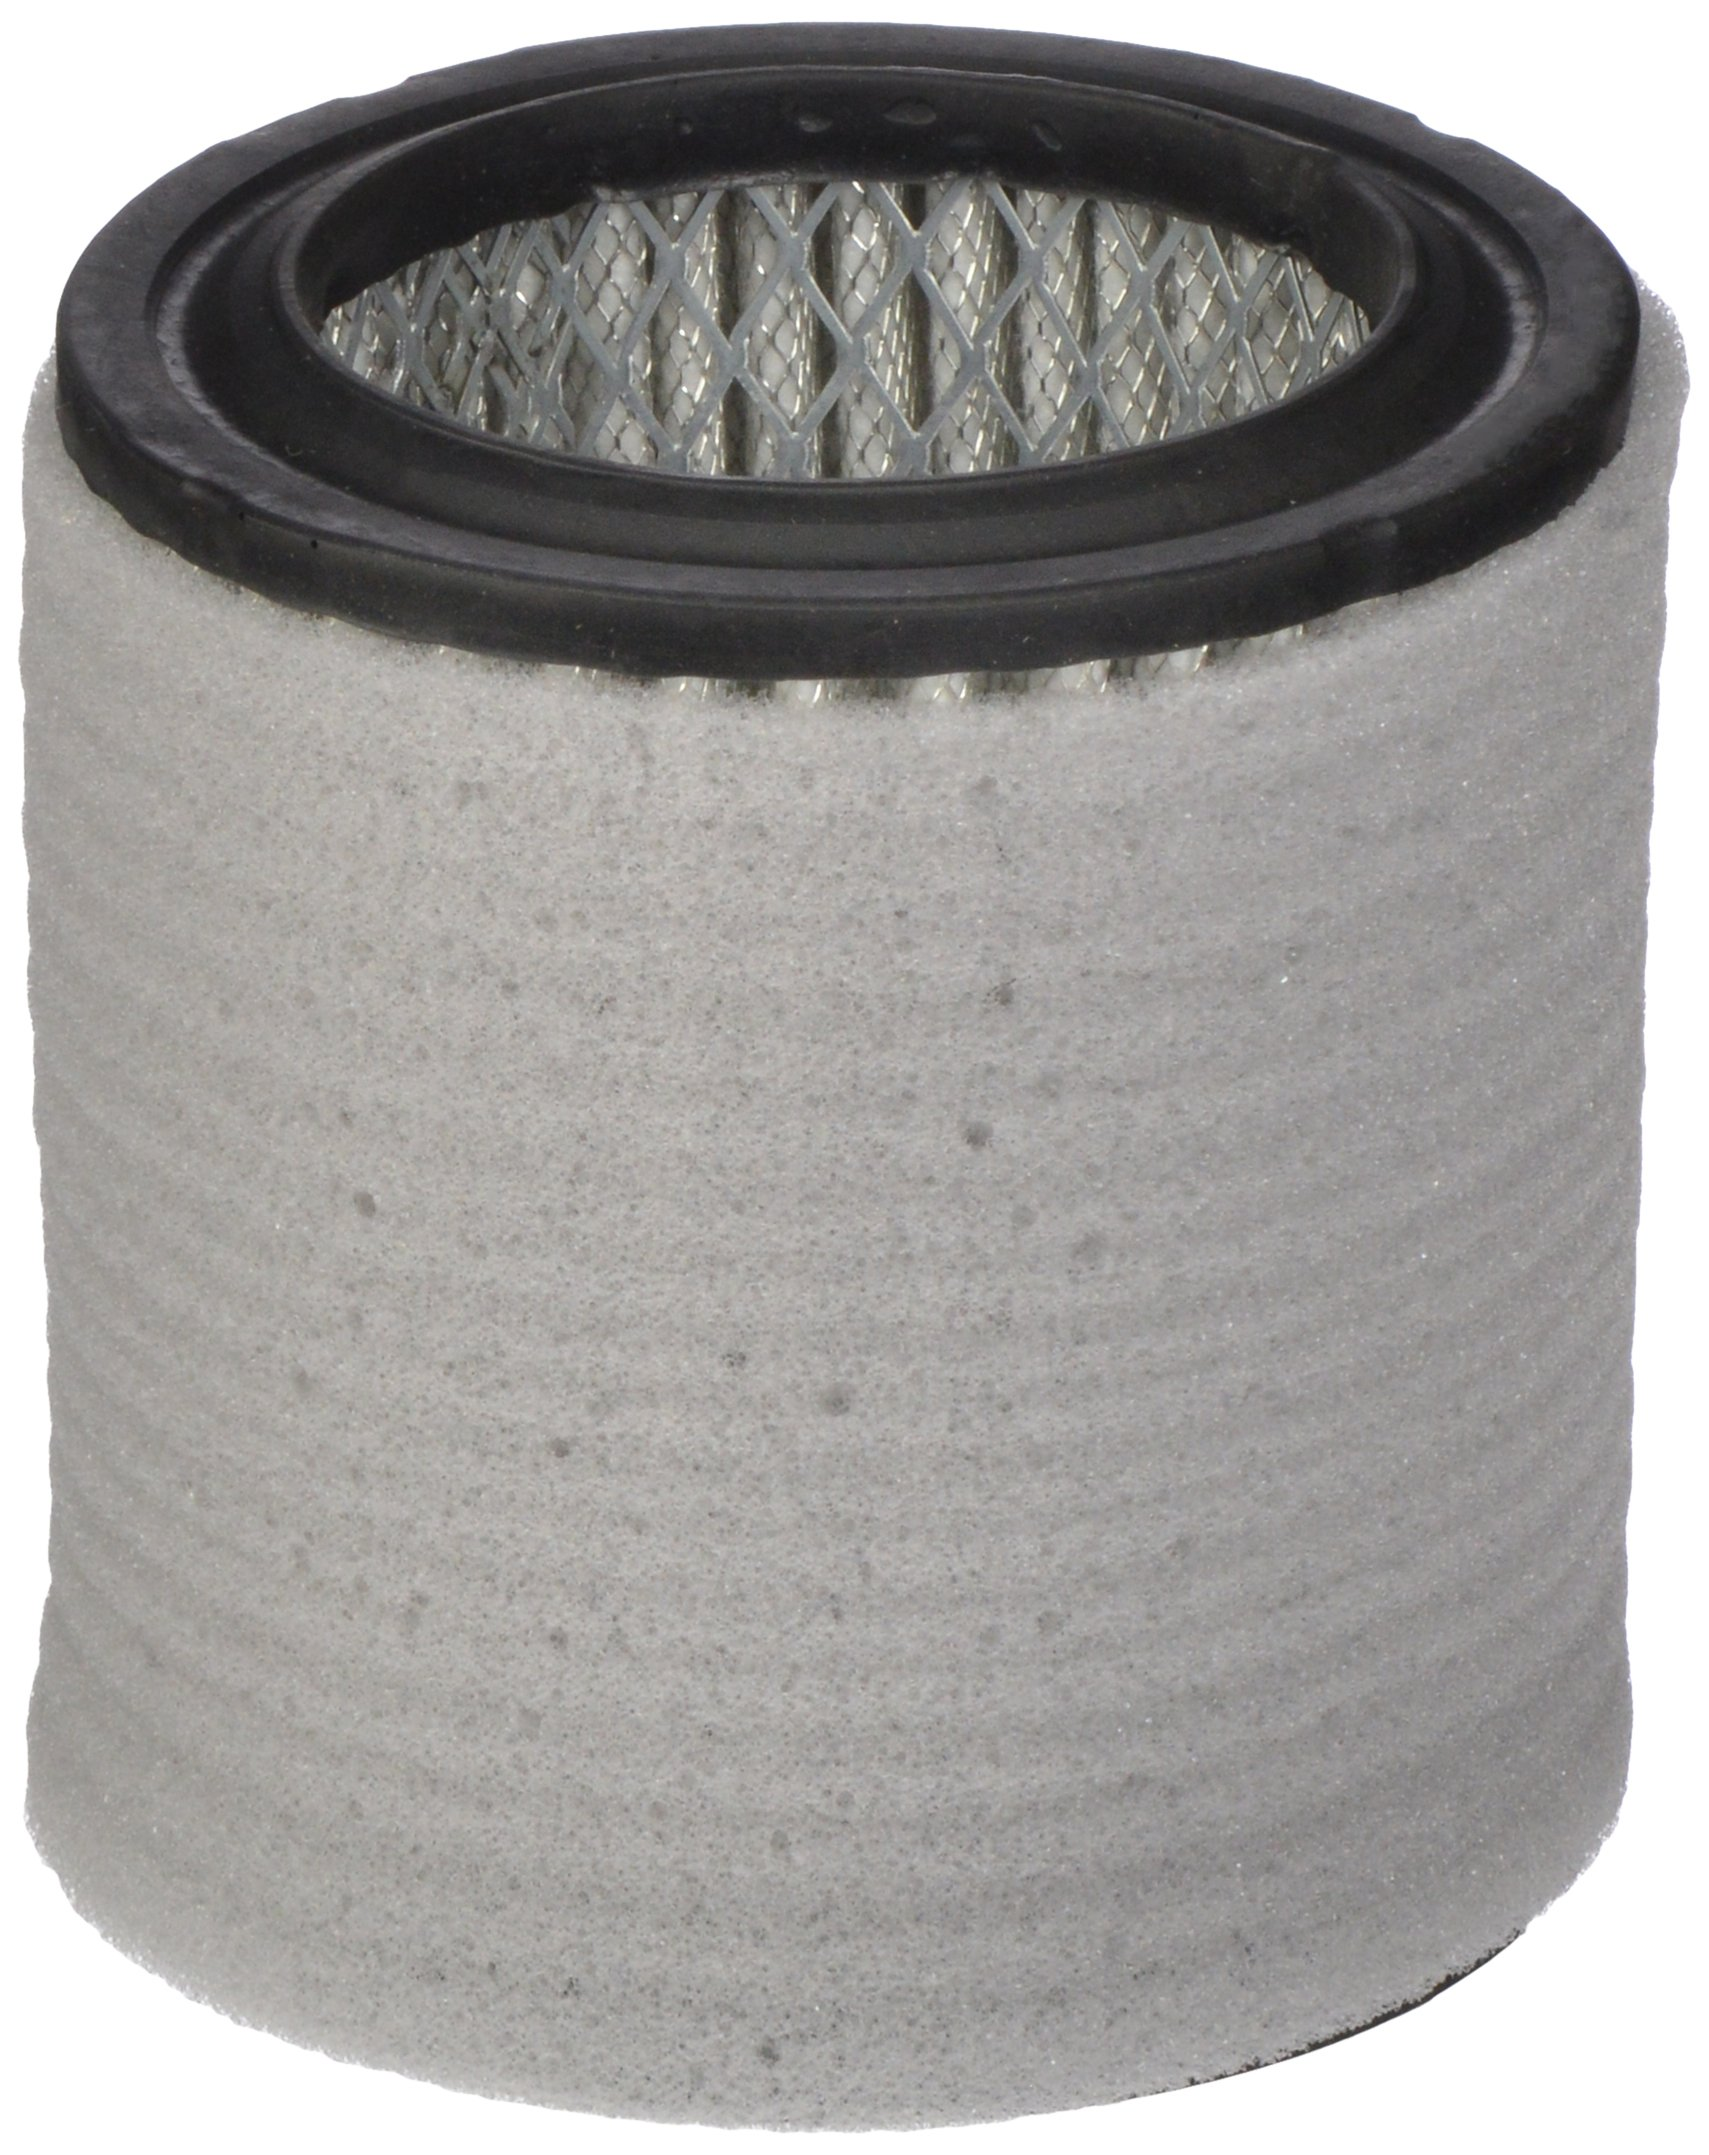 Killer Filter Replacement for Quincy 110377E100 (Pack of 3) by Killer Filter